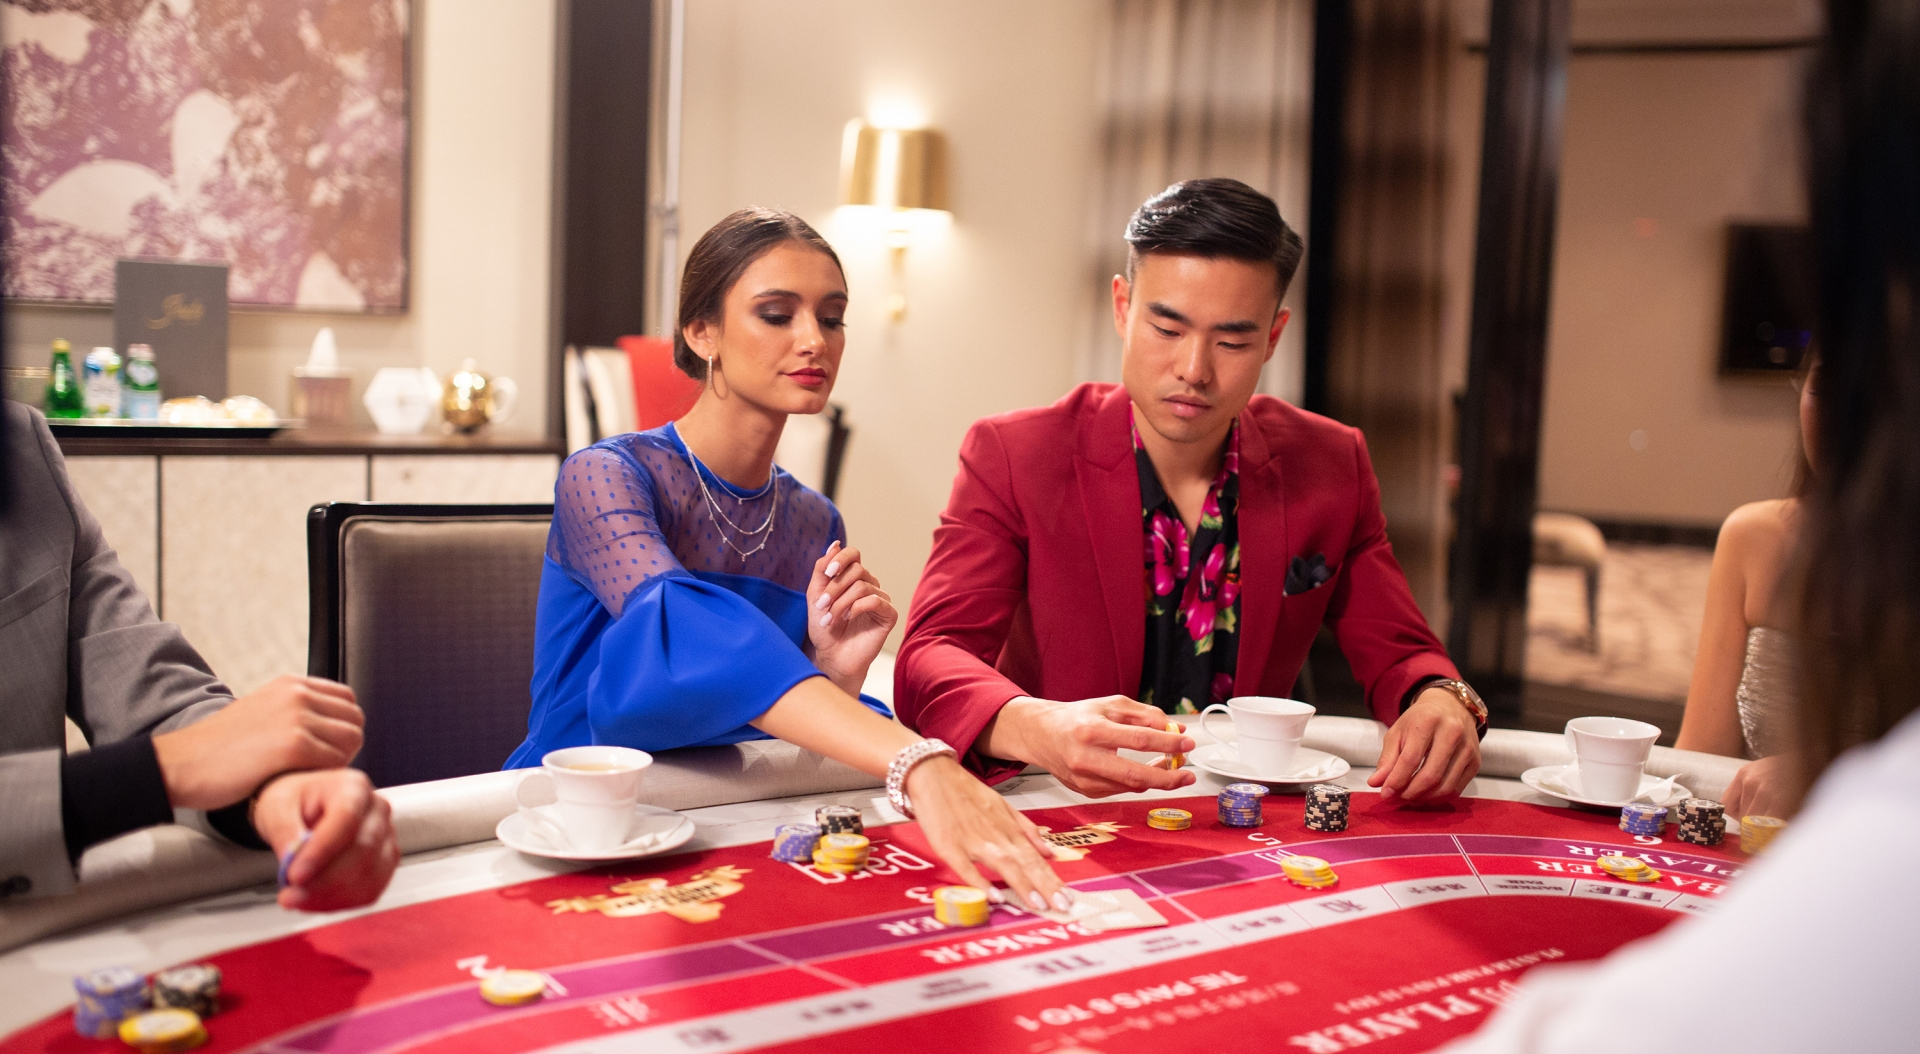 Table Games at Parq Casino | Parq Vancouver